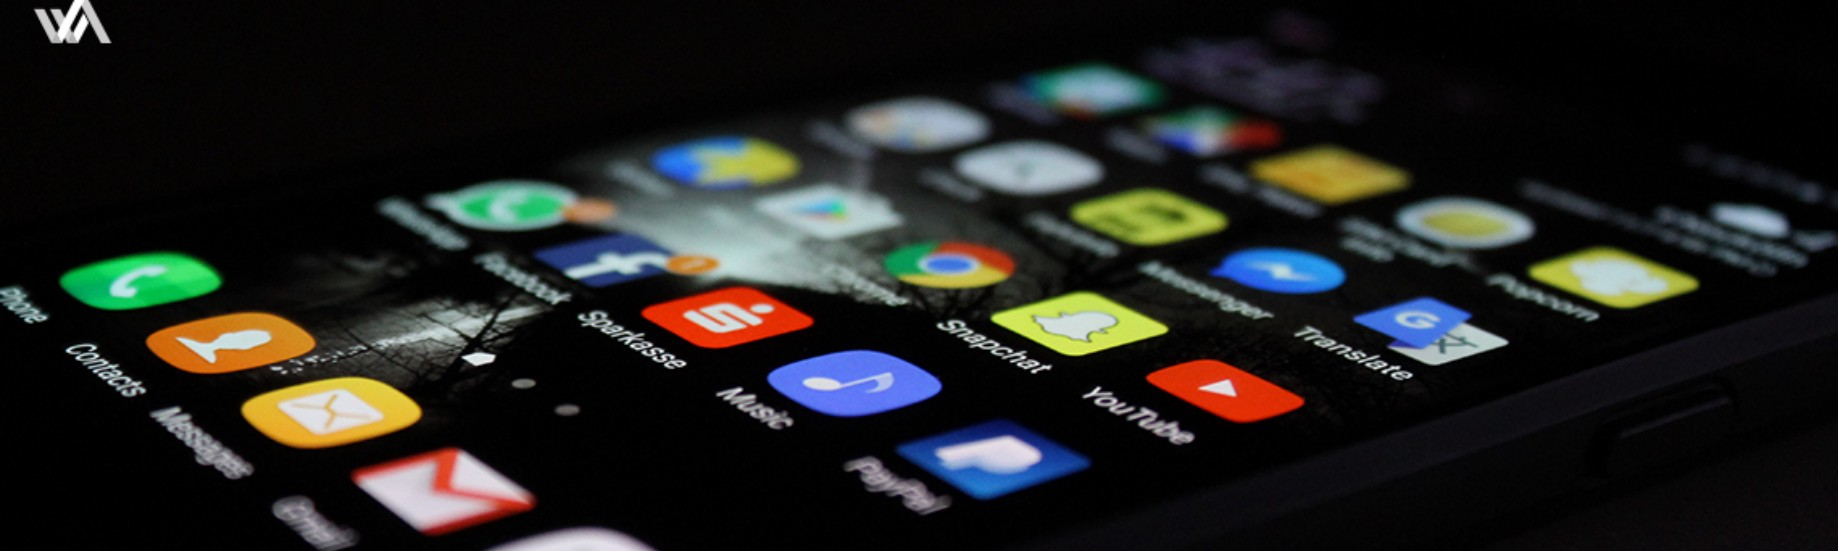 become an ios app developer